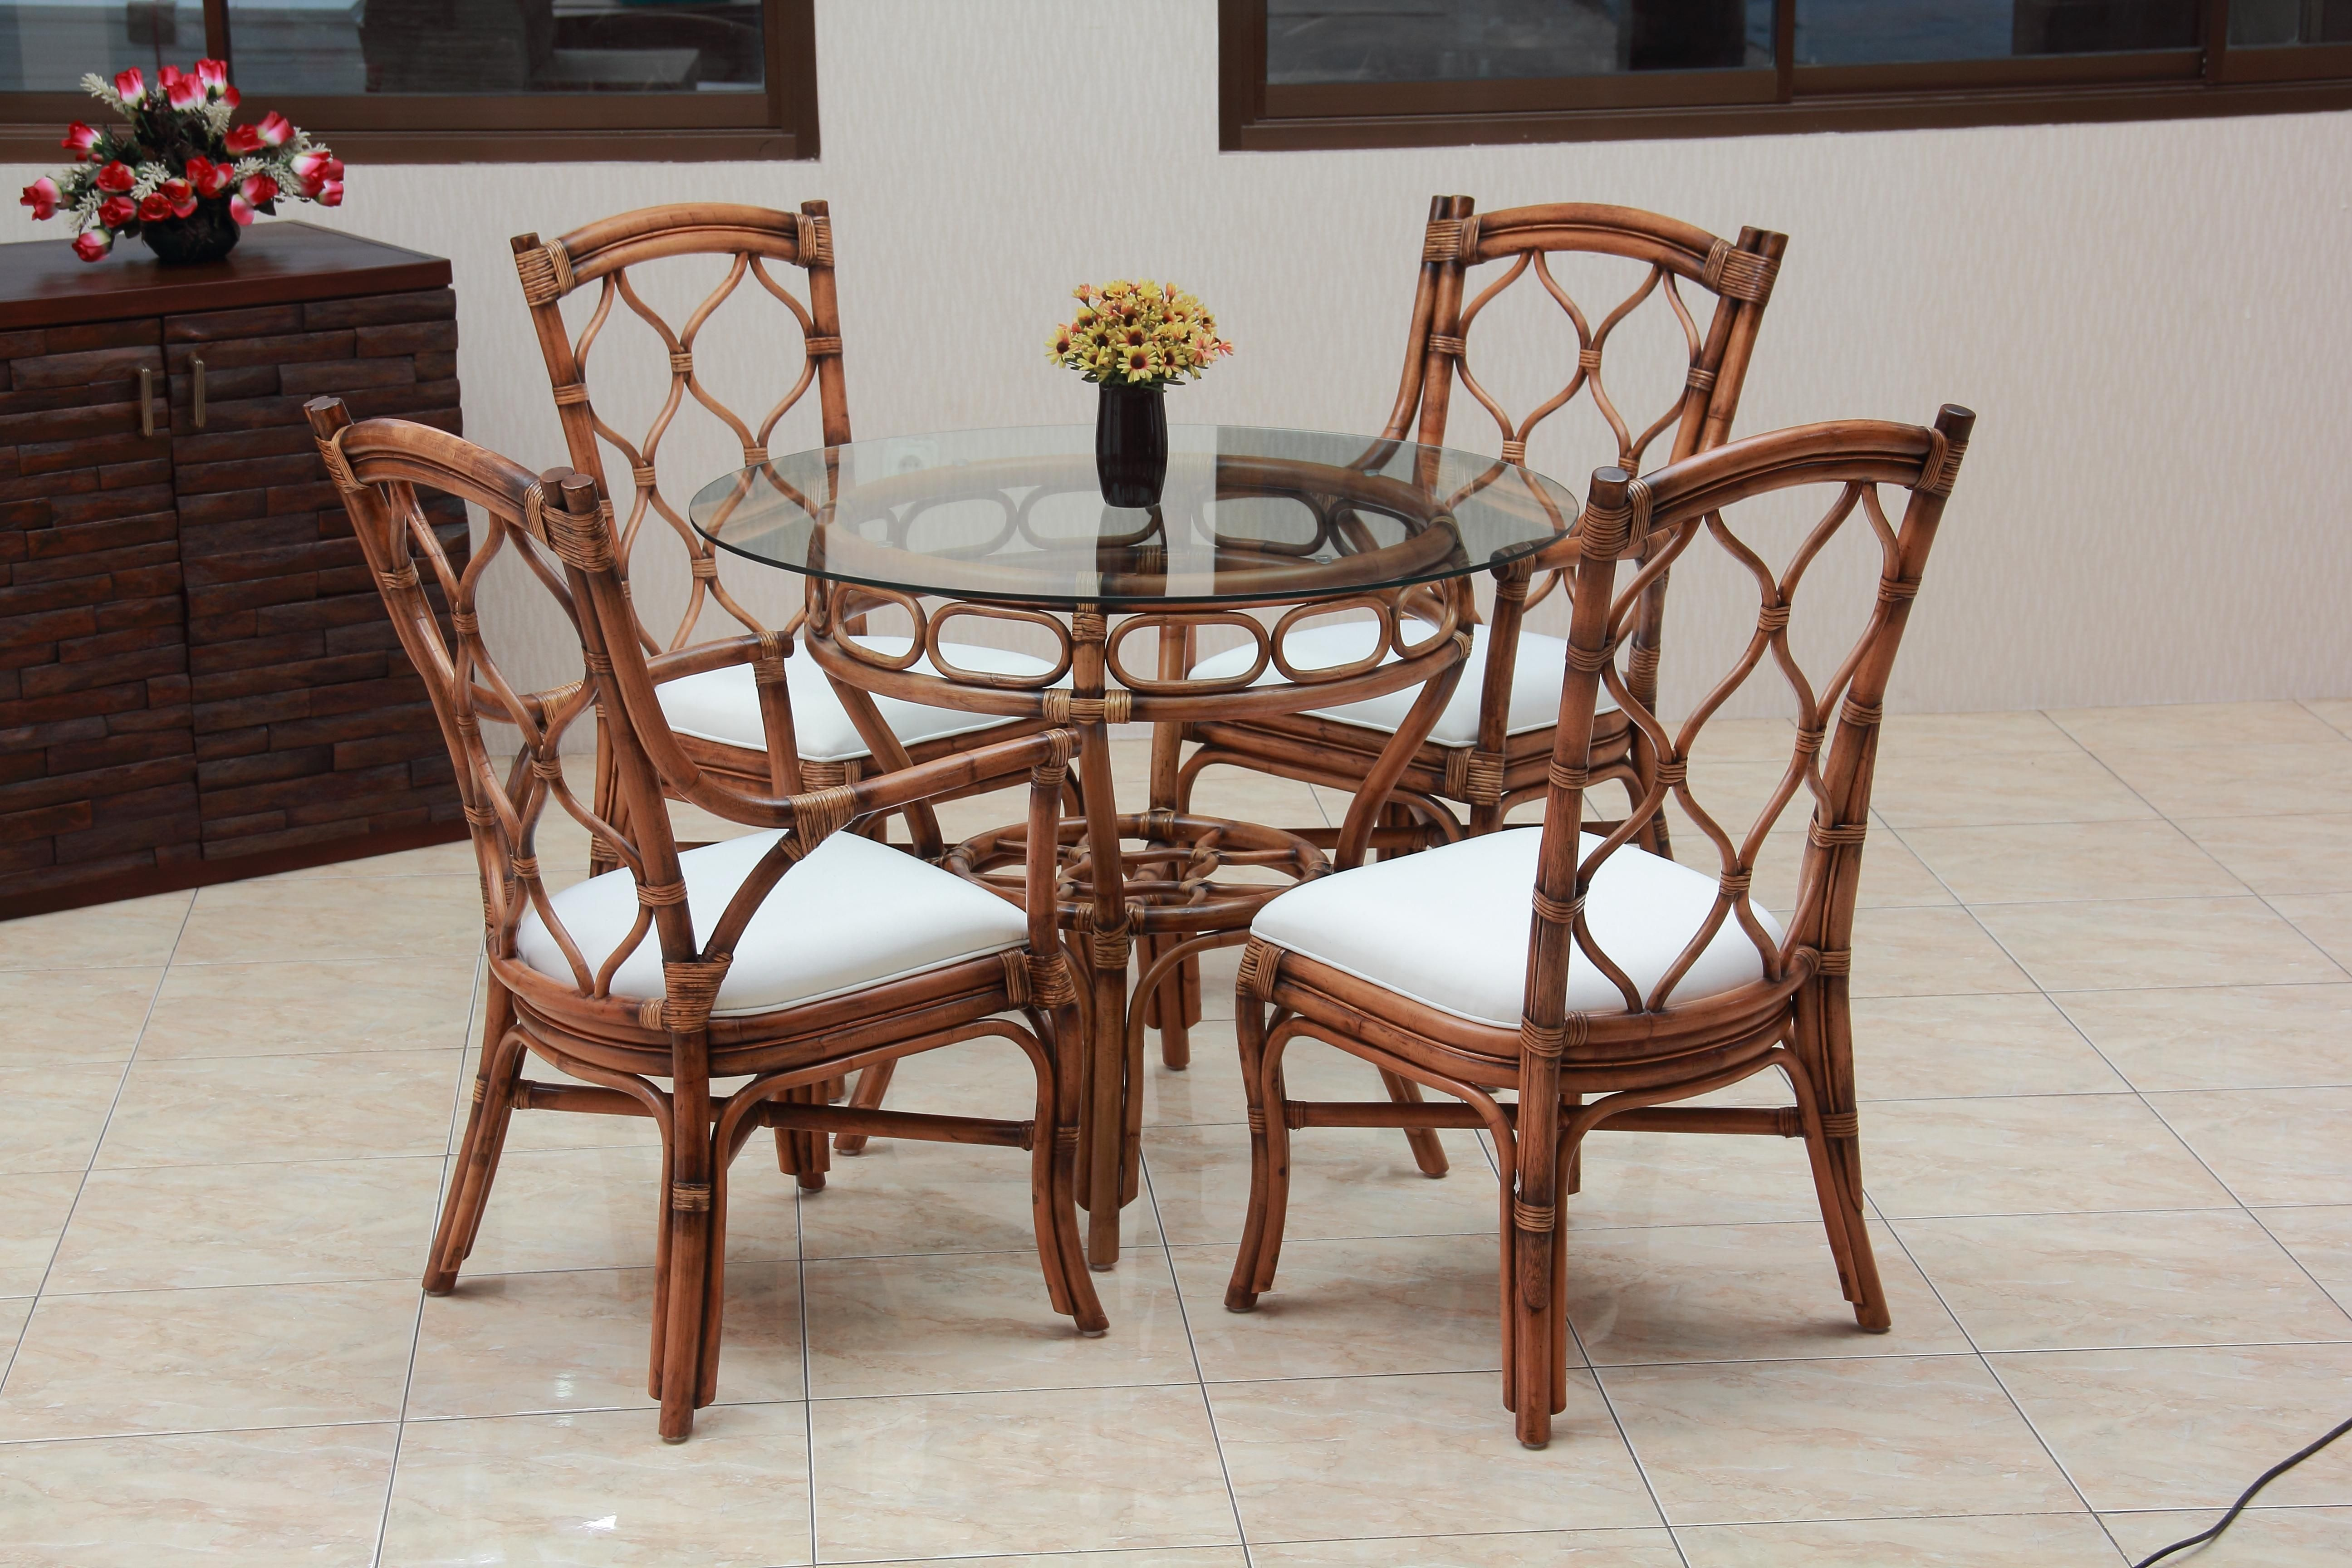 Cafe town Dining set in 2019 Outdoor furniture sets